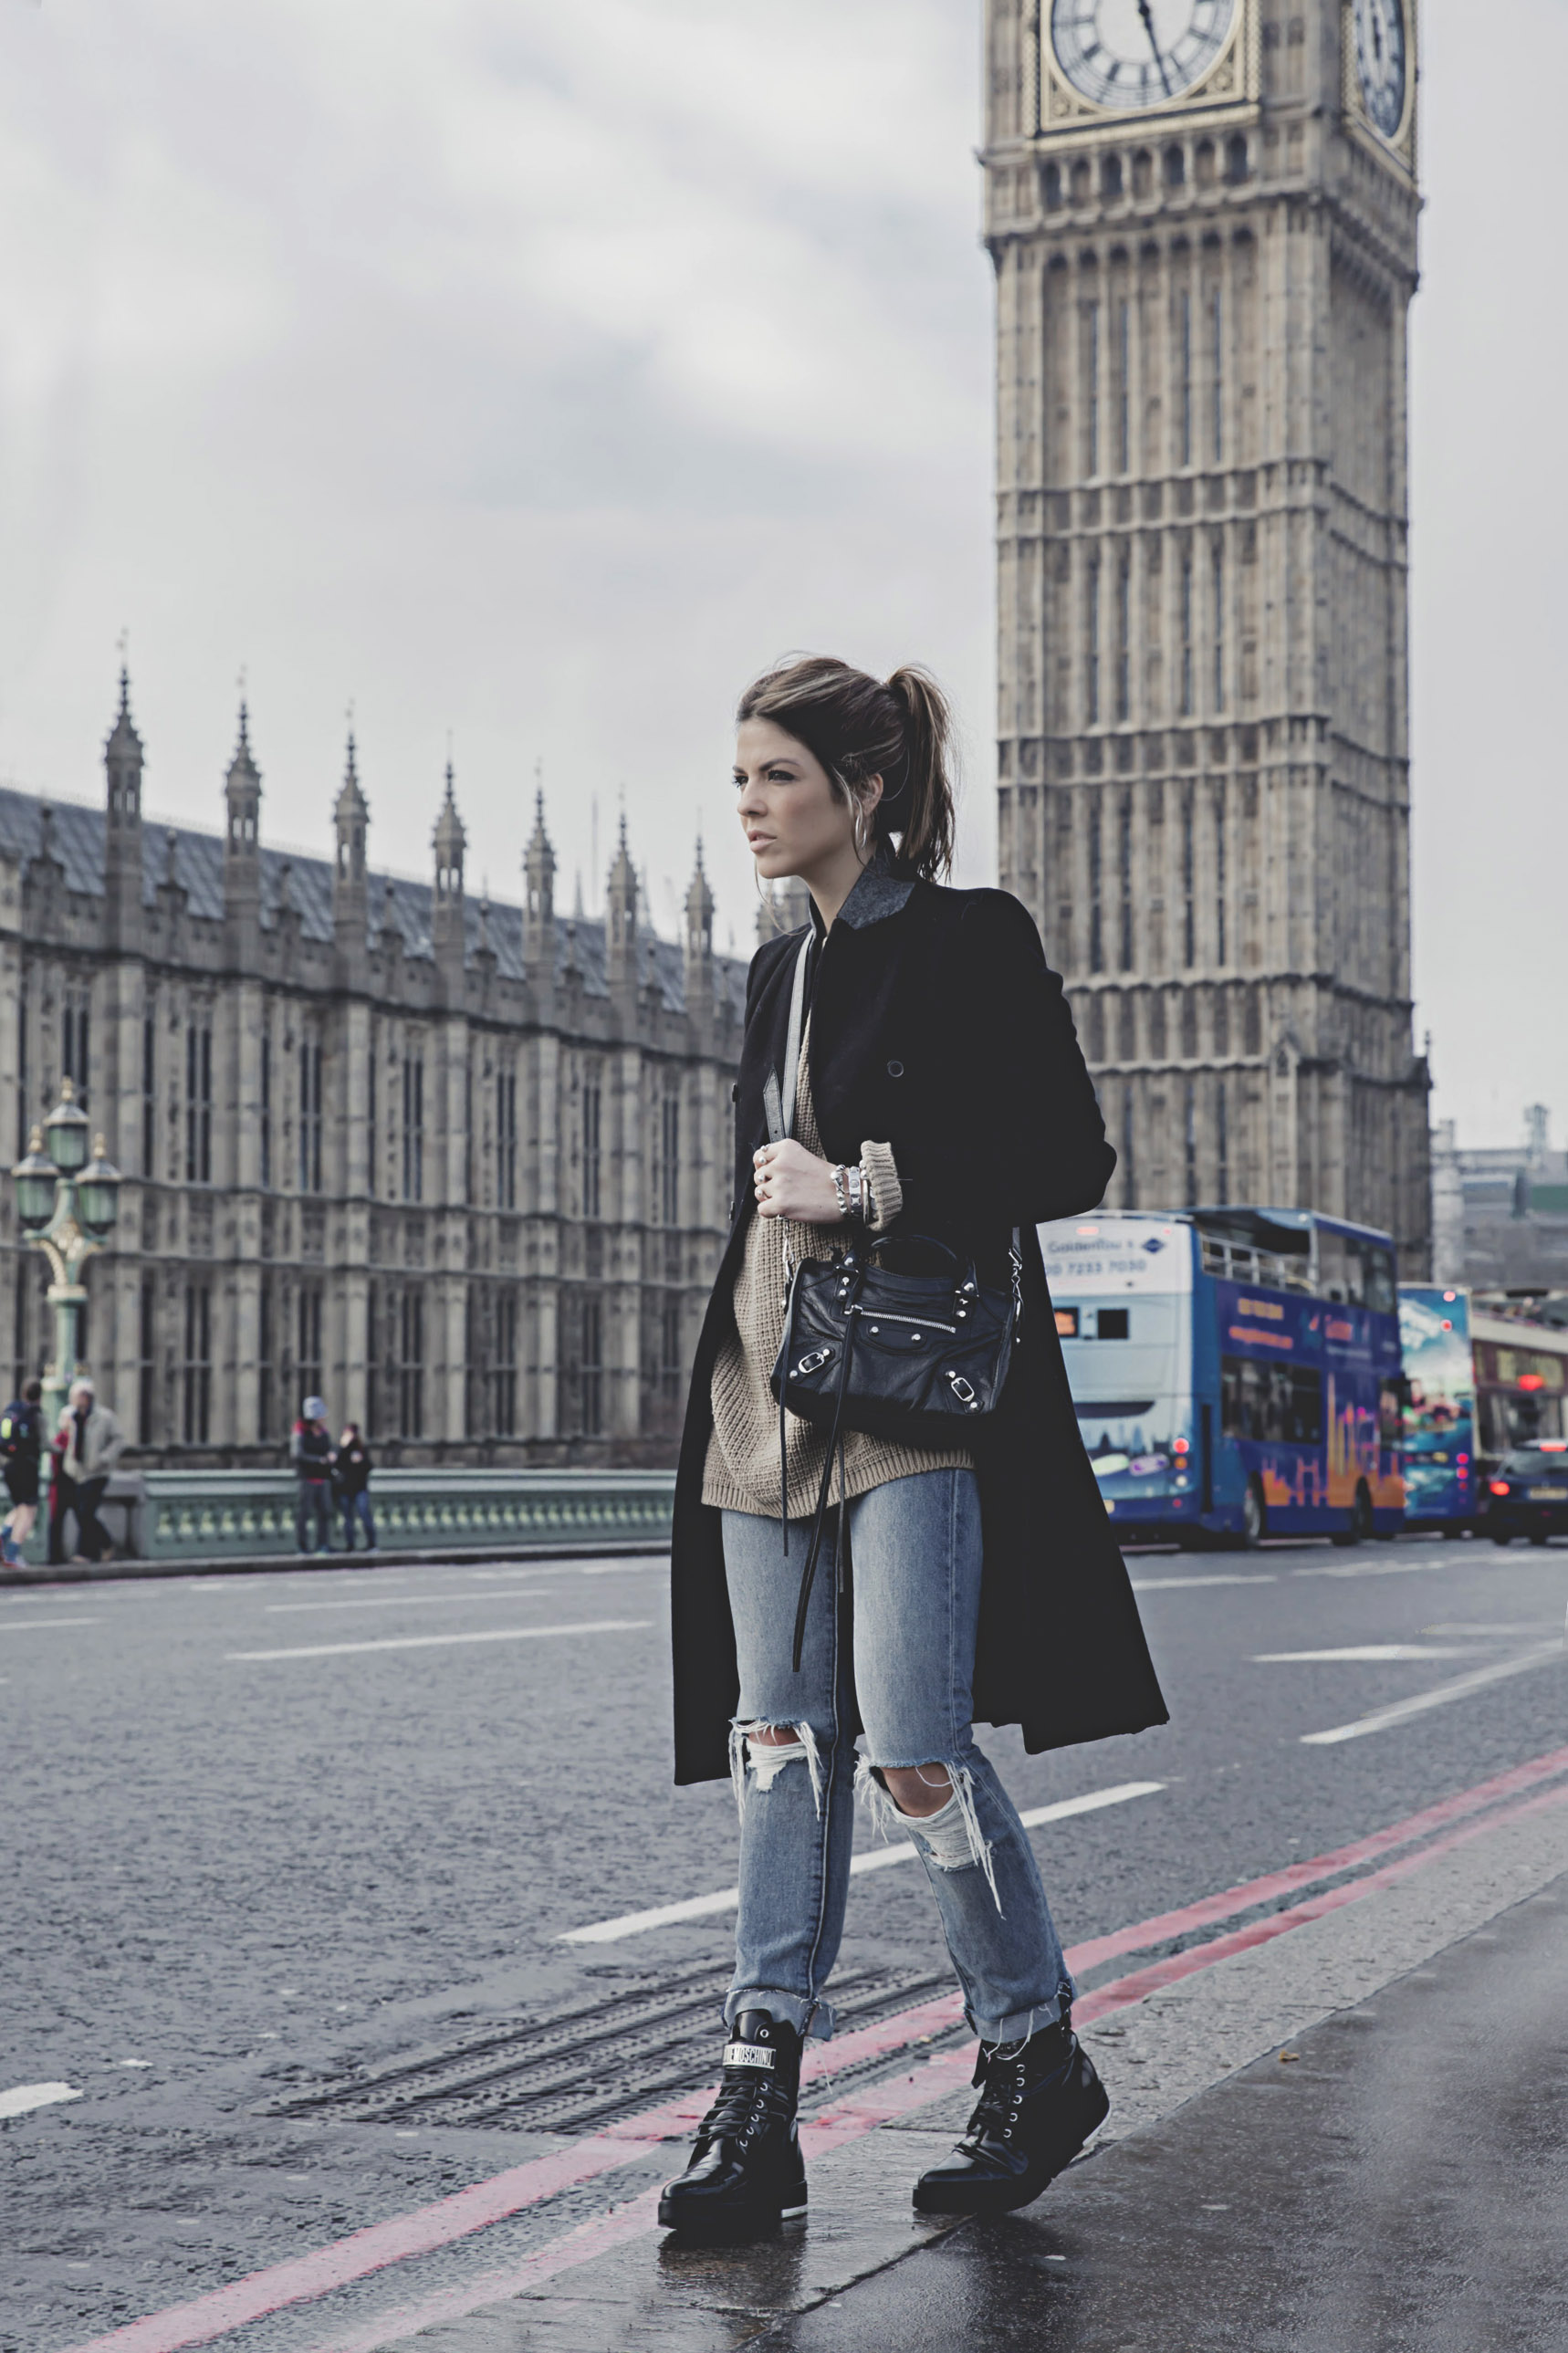 trendy-taste-london-londres-blogger-moschino-zara-jeans-rotos-vaqueros-denim-punto-oversize-7lo